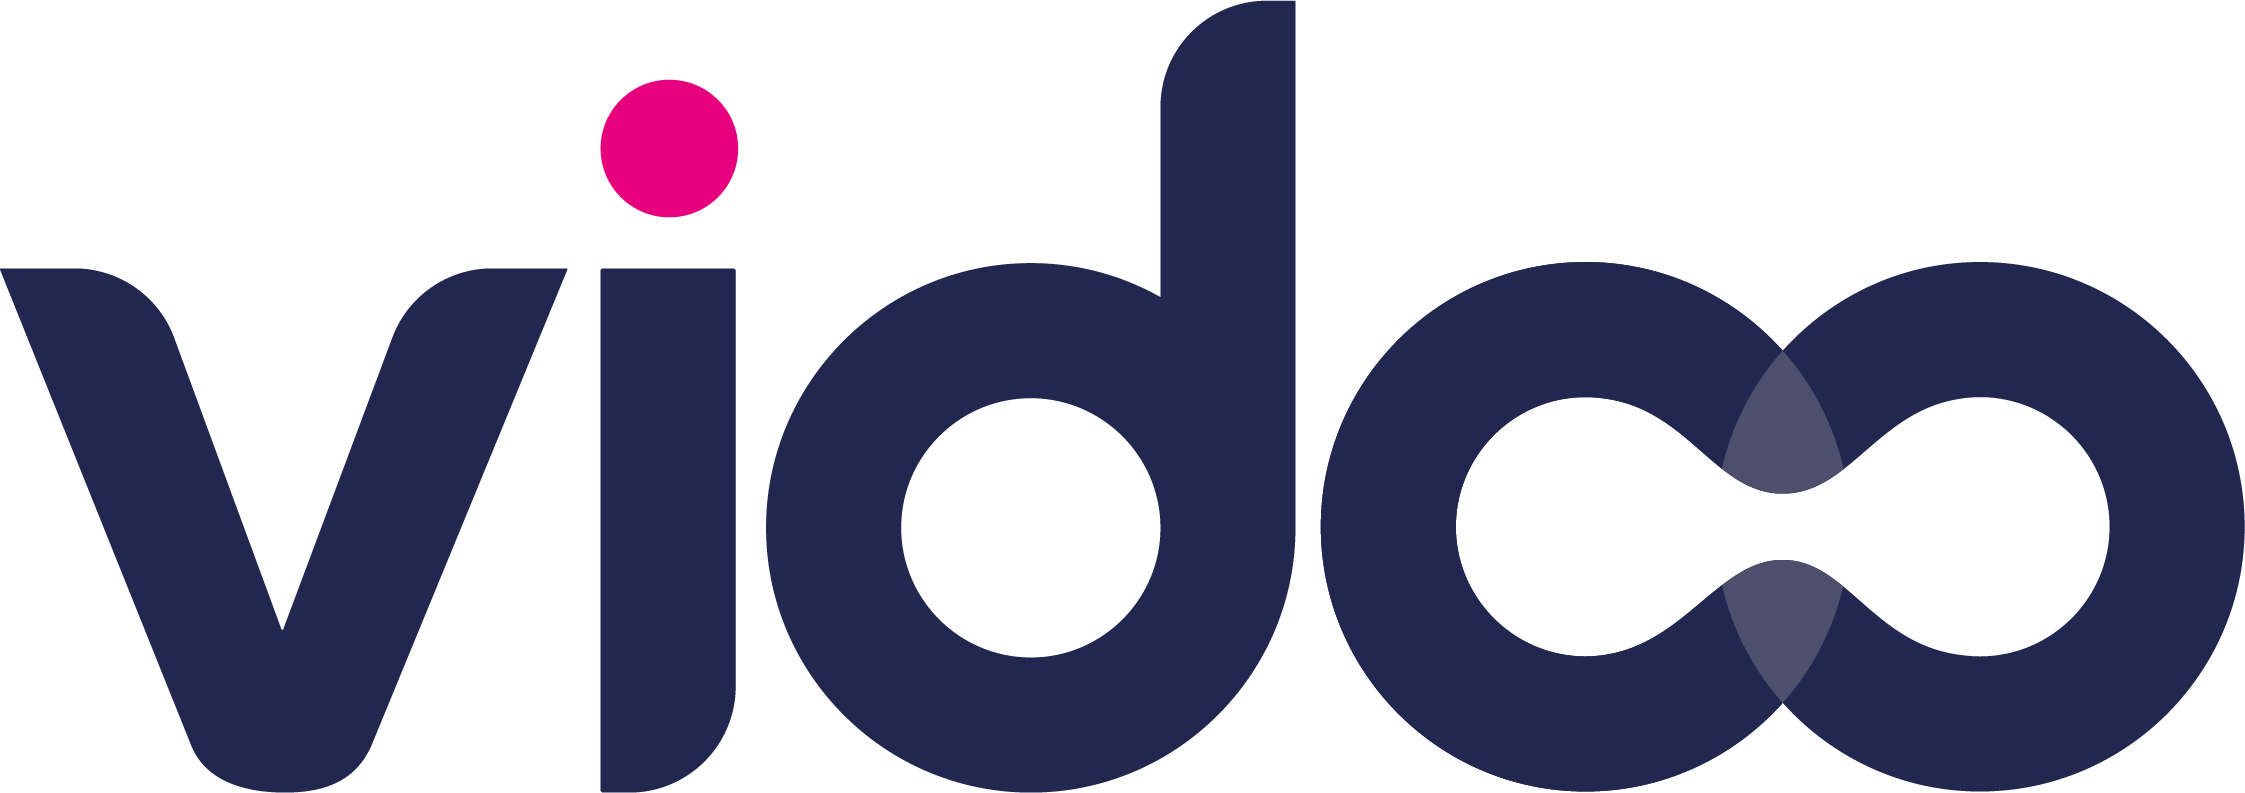 Vidoo | Film, TV & Video Production | Suffolk | Essex | Norfolk | Cambridgeshire | East Anglia | Midlands